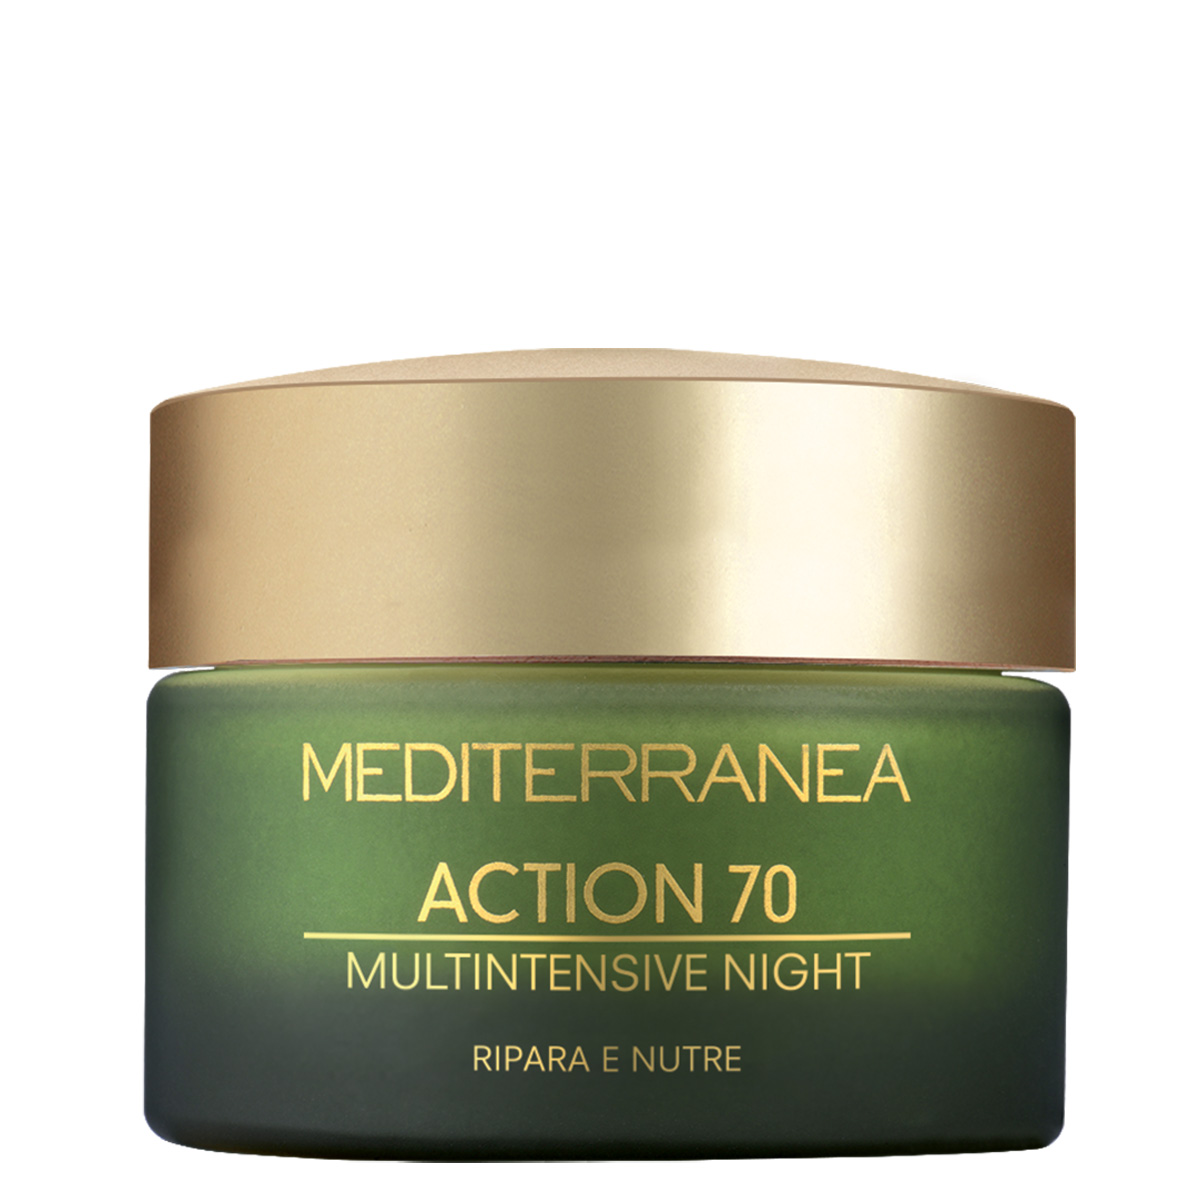 ACTION 70 MULTINTENSIVE NIGHT CREAM